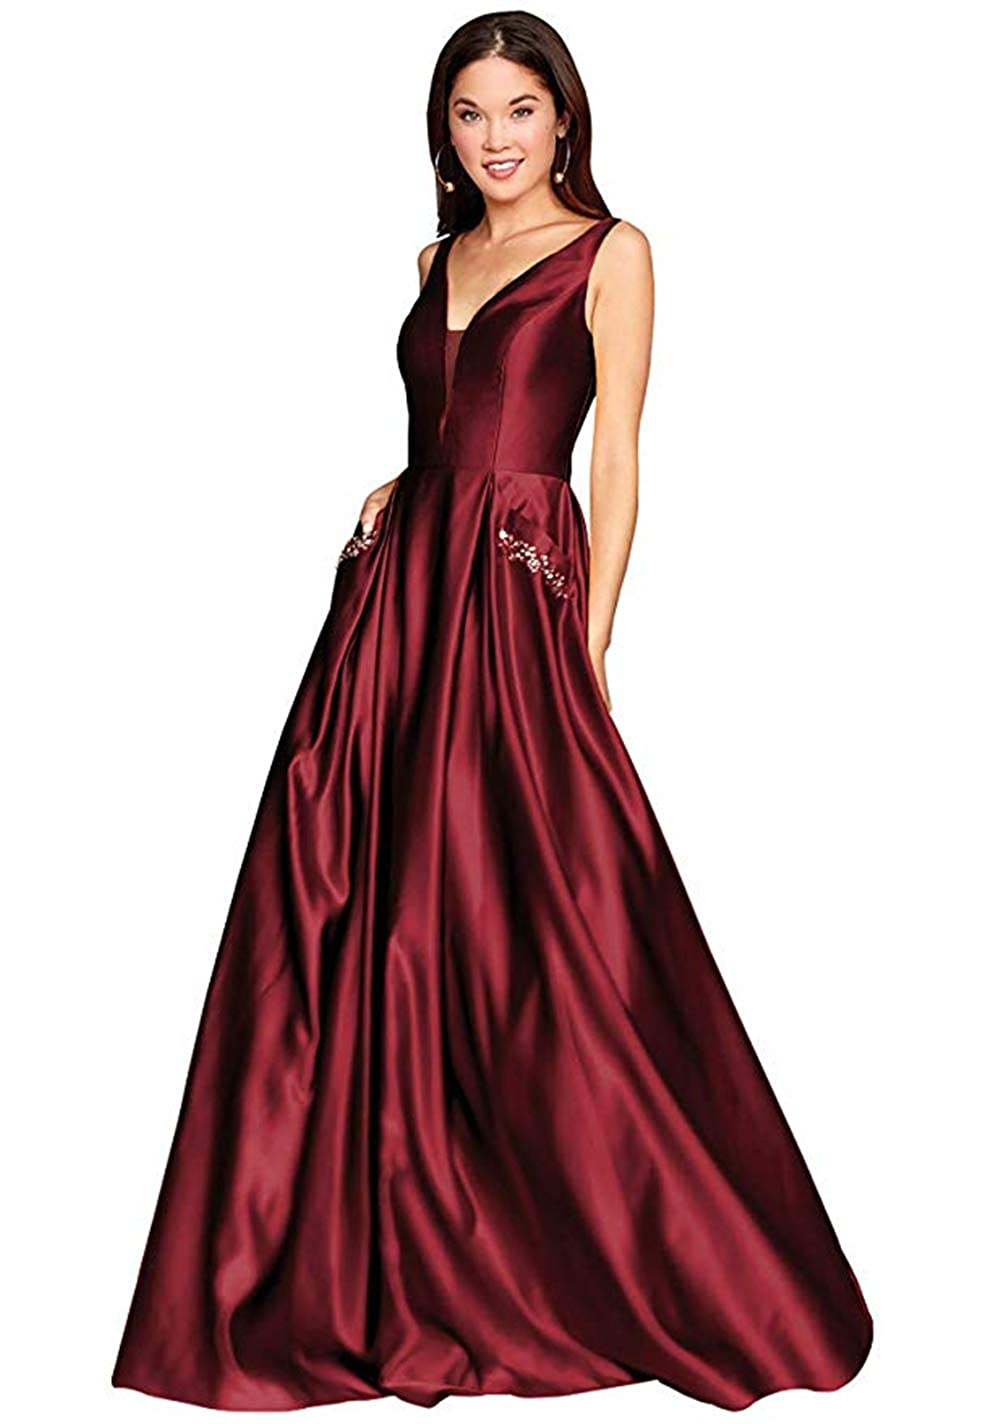 01burgundy PROMNOVAS Women's V Neck Backless Beaded Satin Prom Dress Long Formal Evening Gown with Pockets